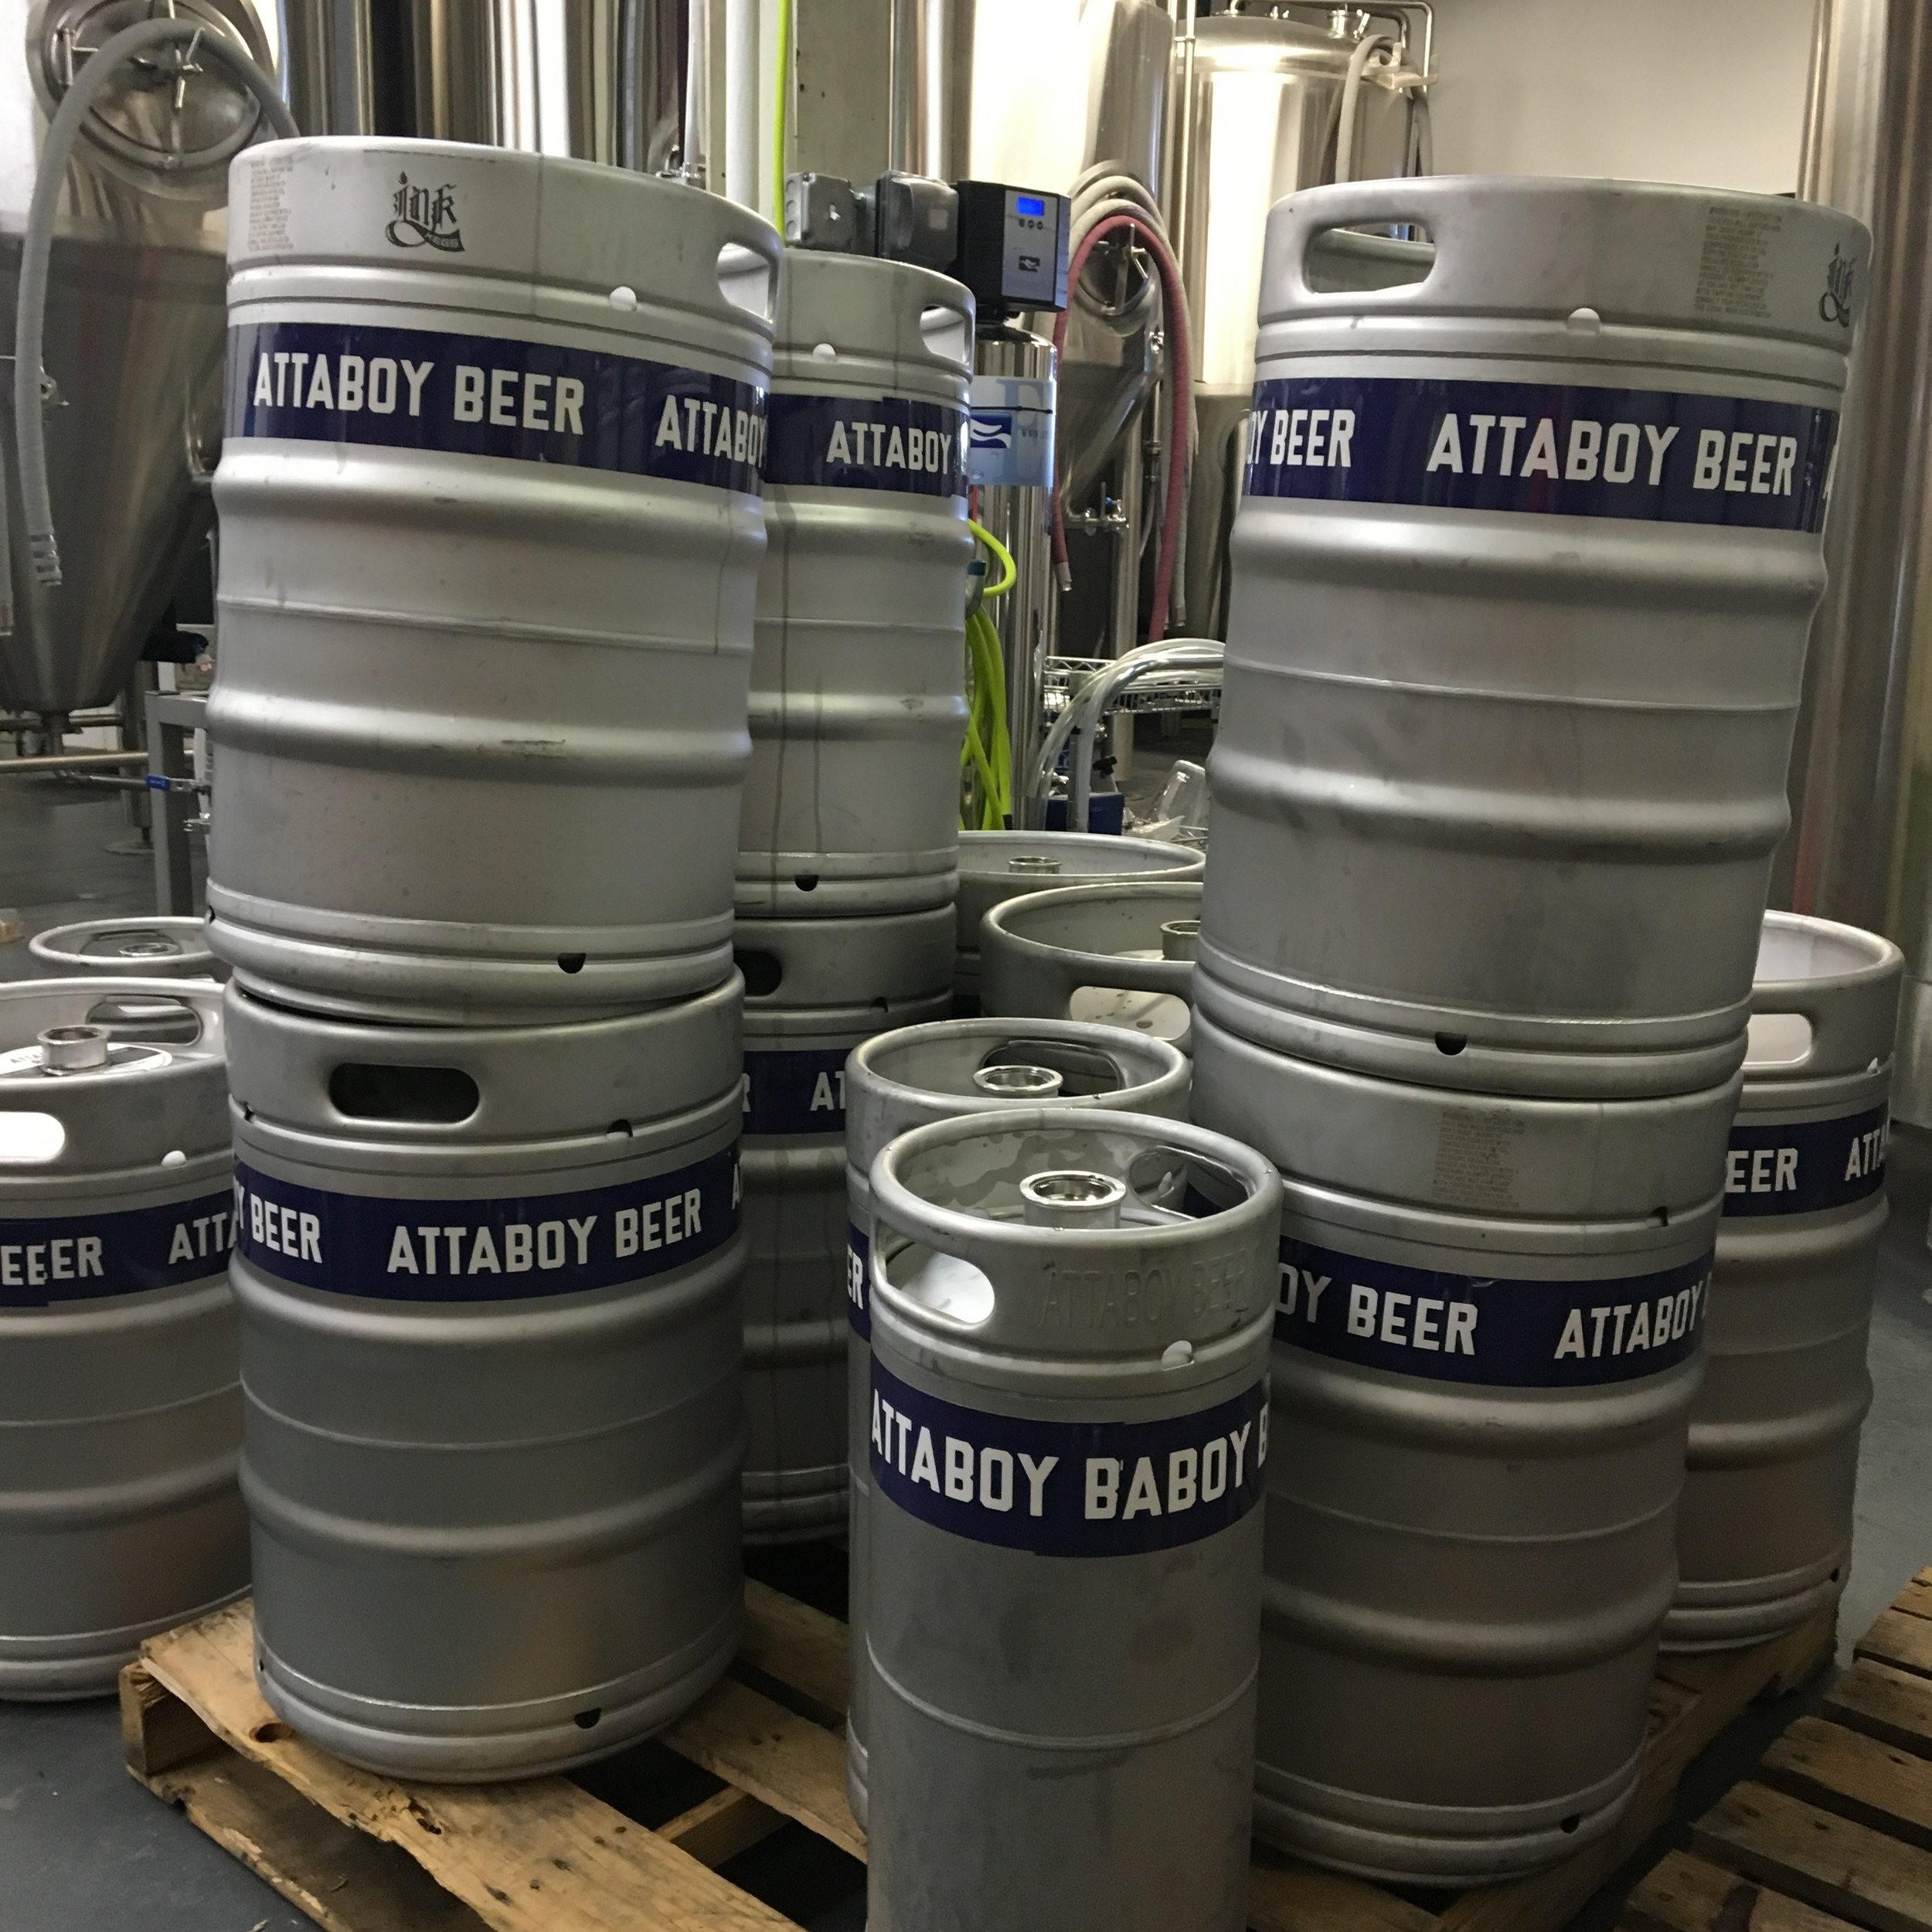 Attaboy Beer kegs